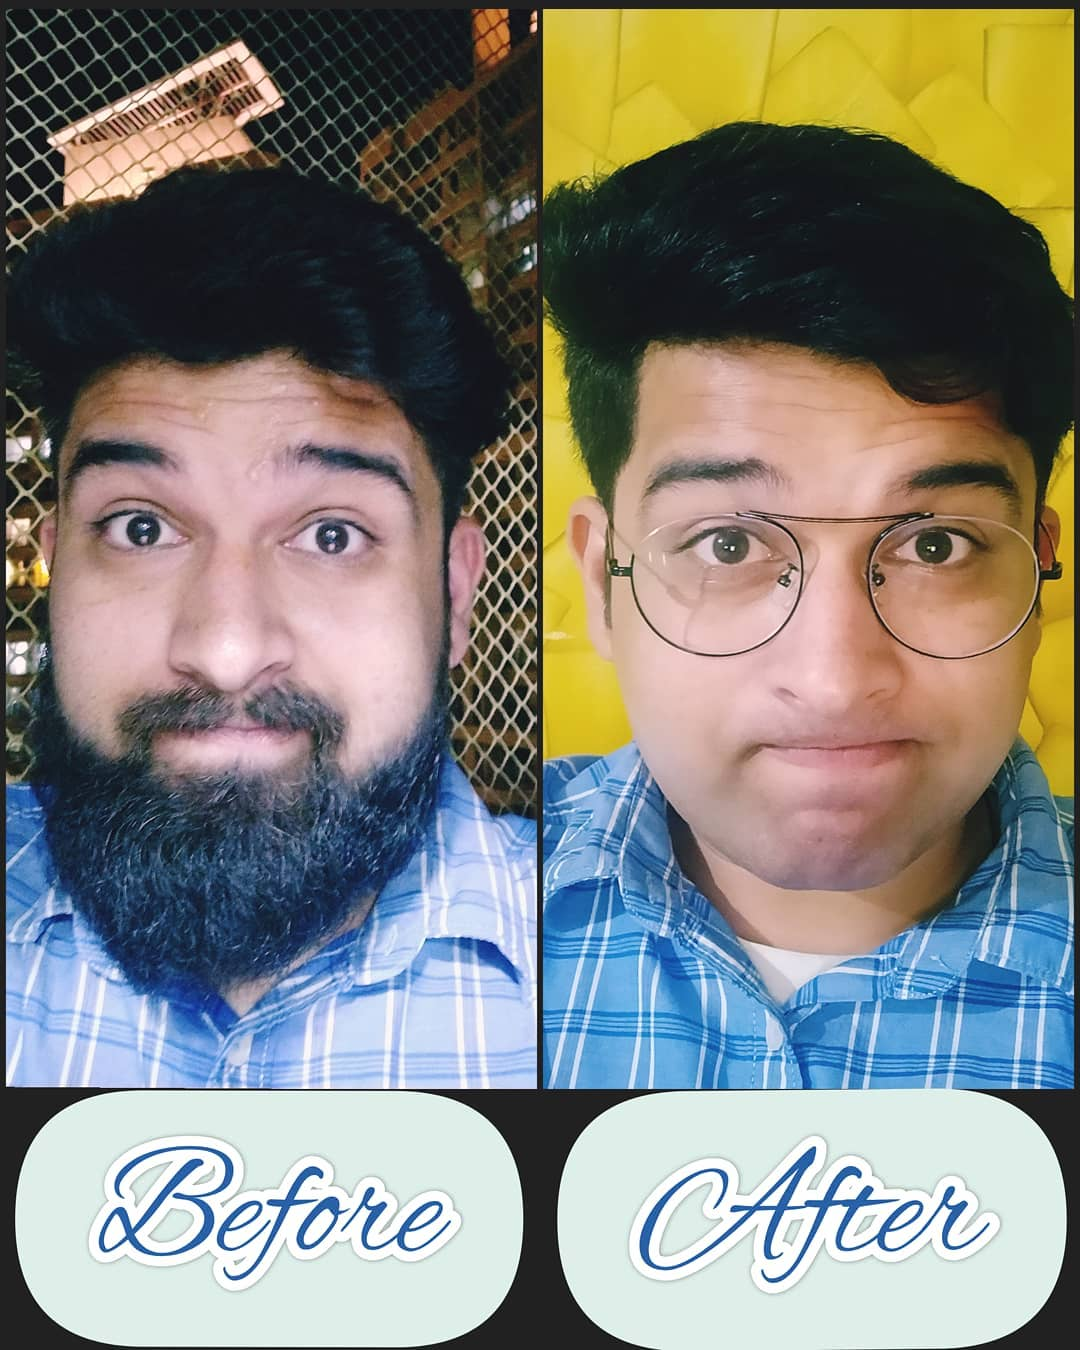 #10yearchallenge completed in just 10 minutes. . . #nautankideep #nautanki #10yearschallenge #beard #cleanshave #beforeandafter #10minutechallenge #beardo